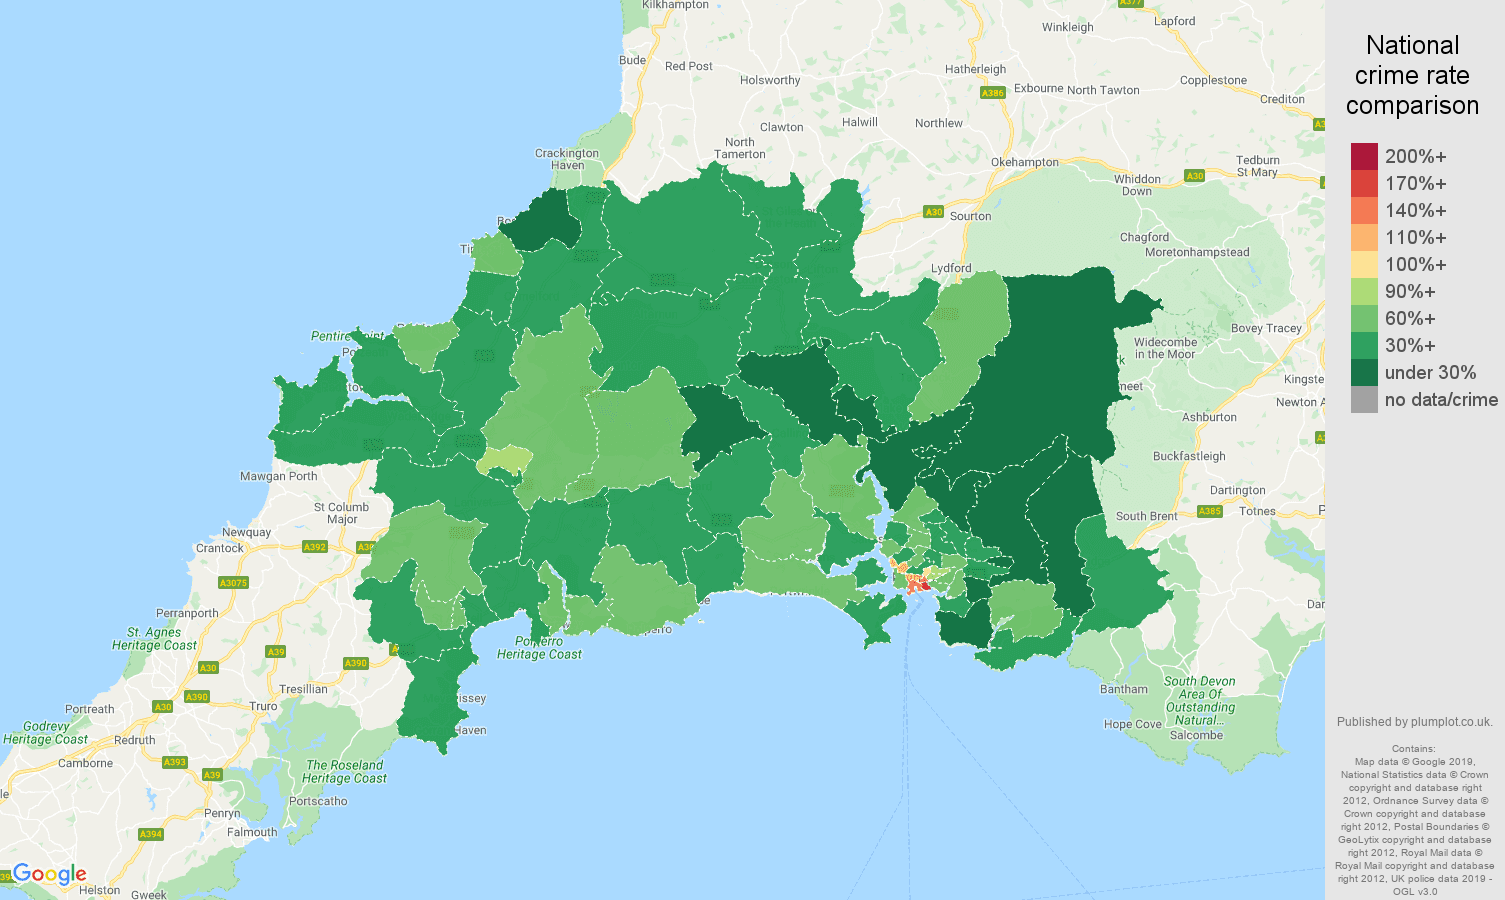 Plymouth other theft crime rate comparison map